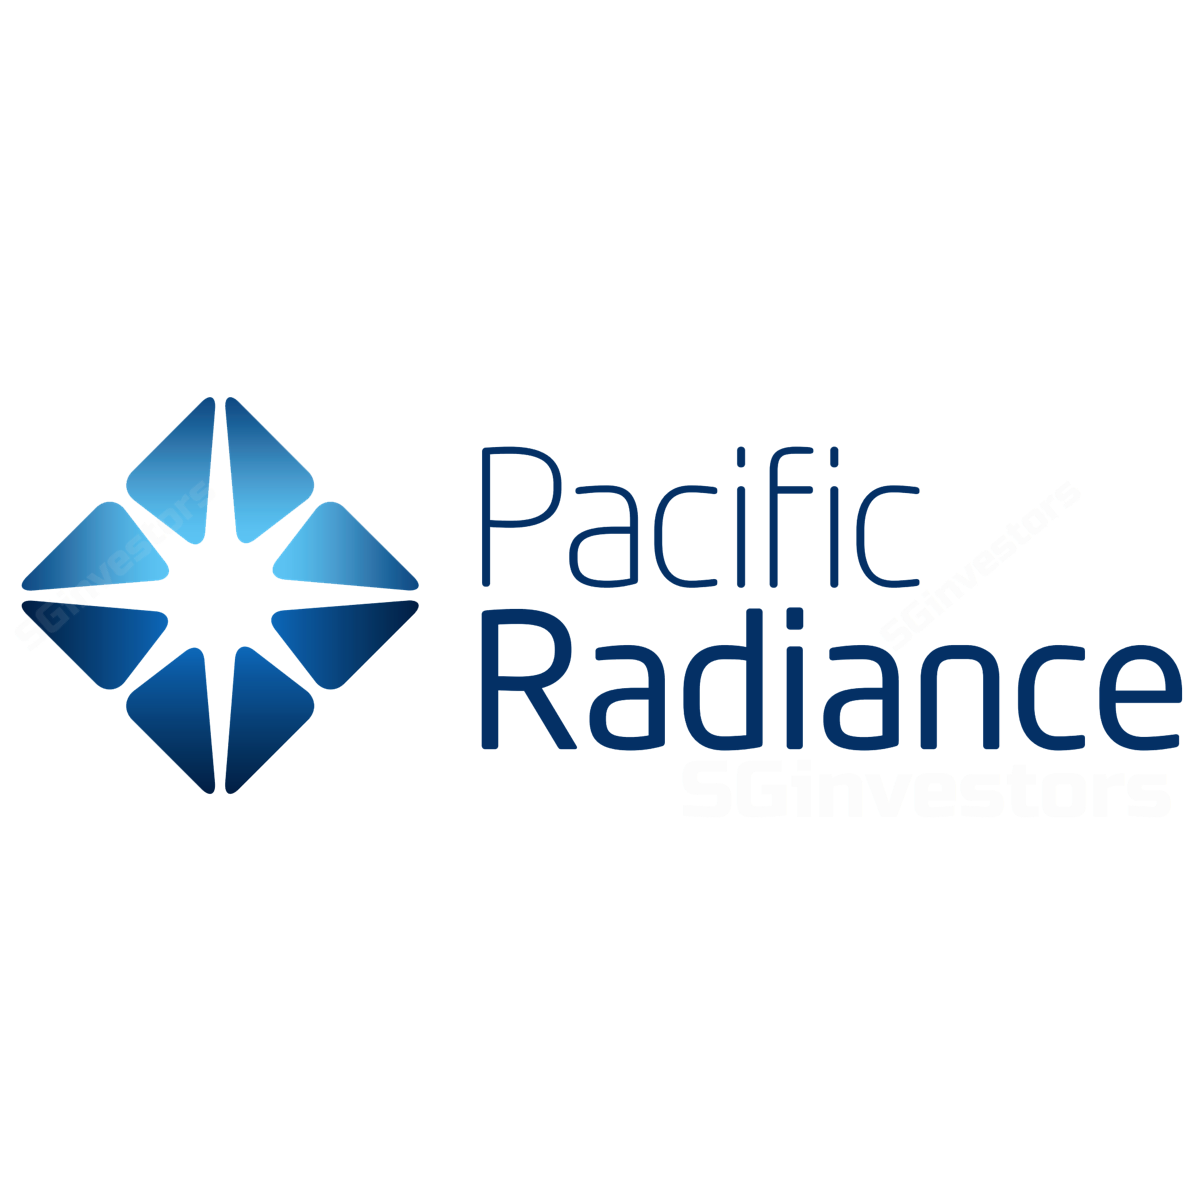 Pacific Radiance - CIMB Research 2018-01-12: Cleaning Up Mode